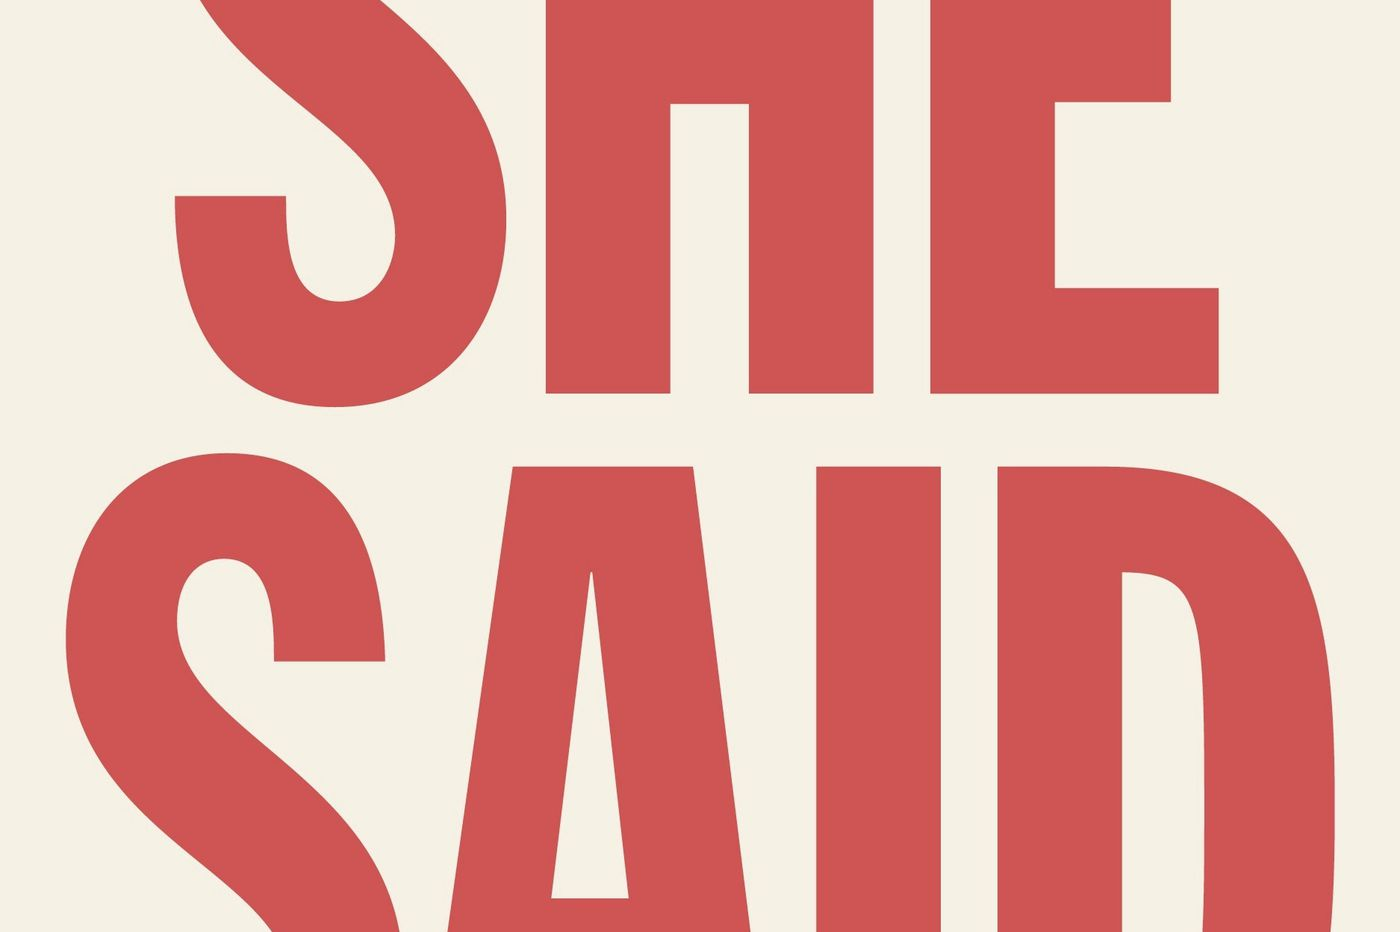 Old-fashioned reporting most compelling aspect of 'She Said' | Book review